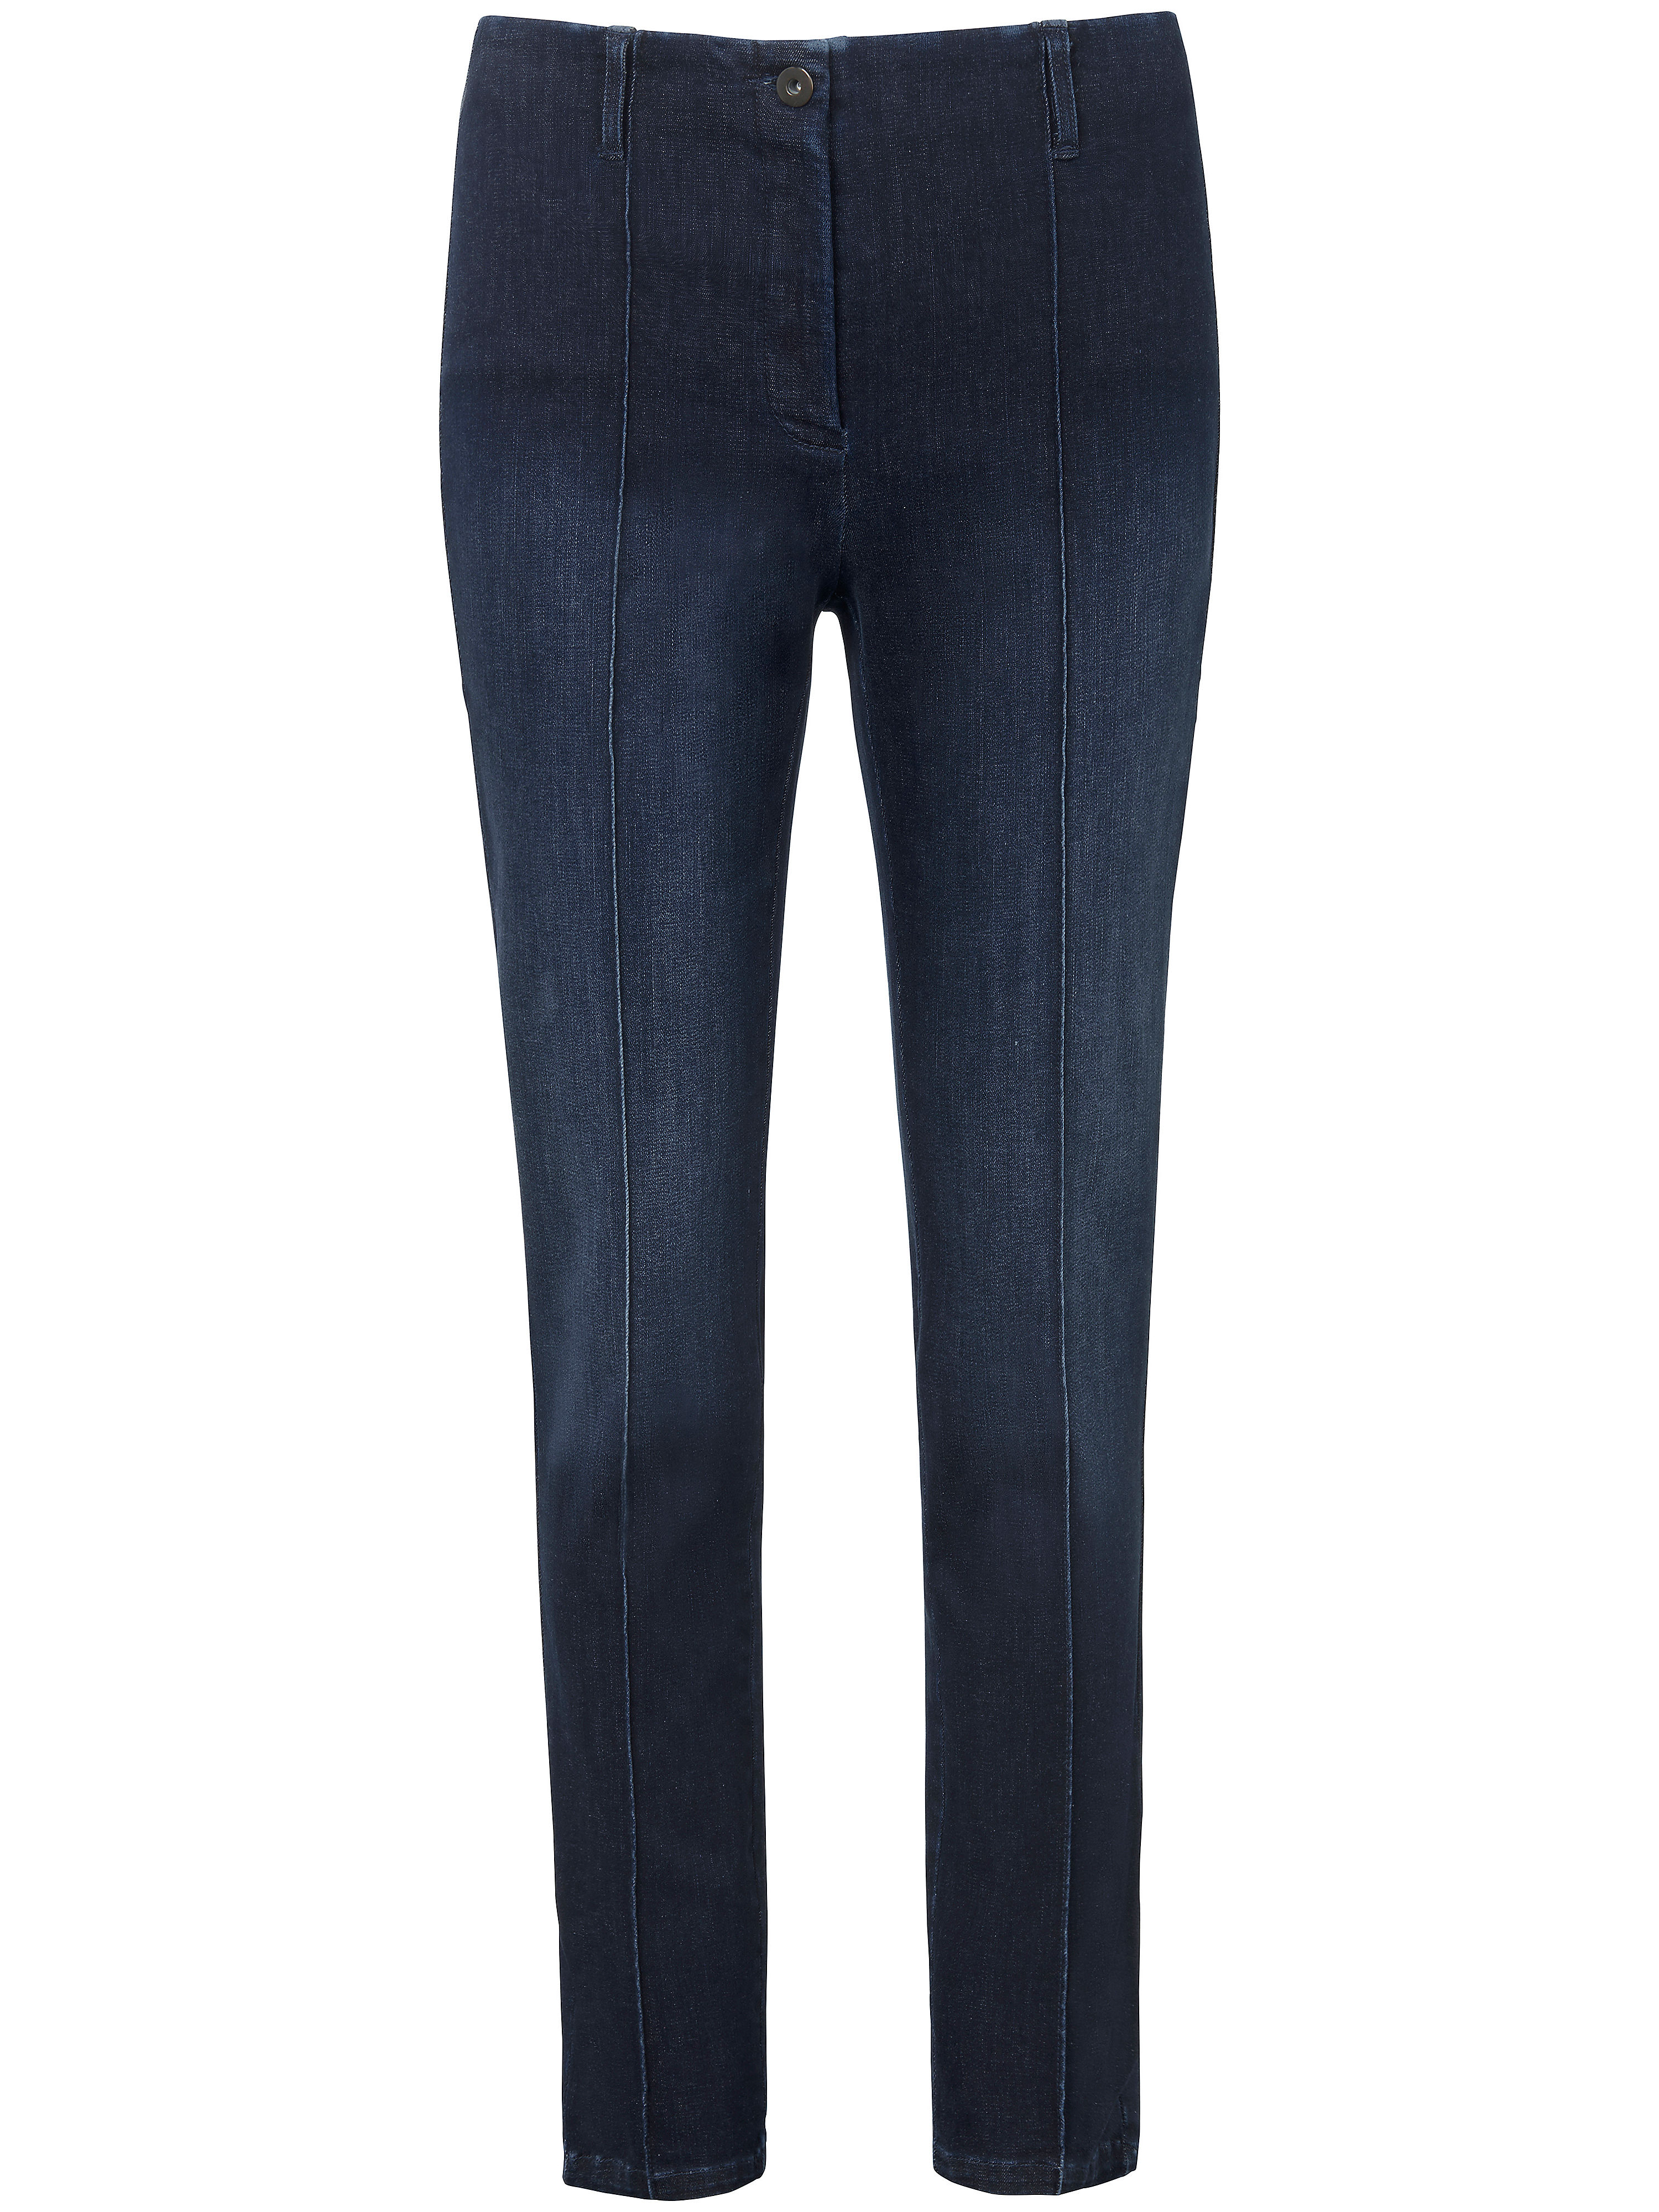 Le jean 7/8  DAY.LIKE denim taille 19